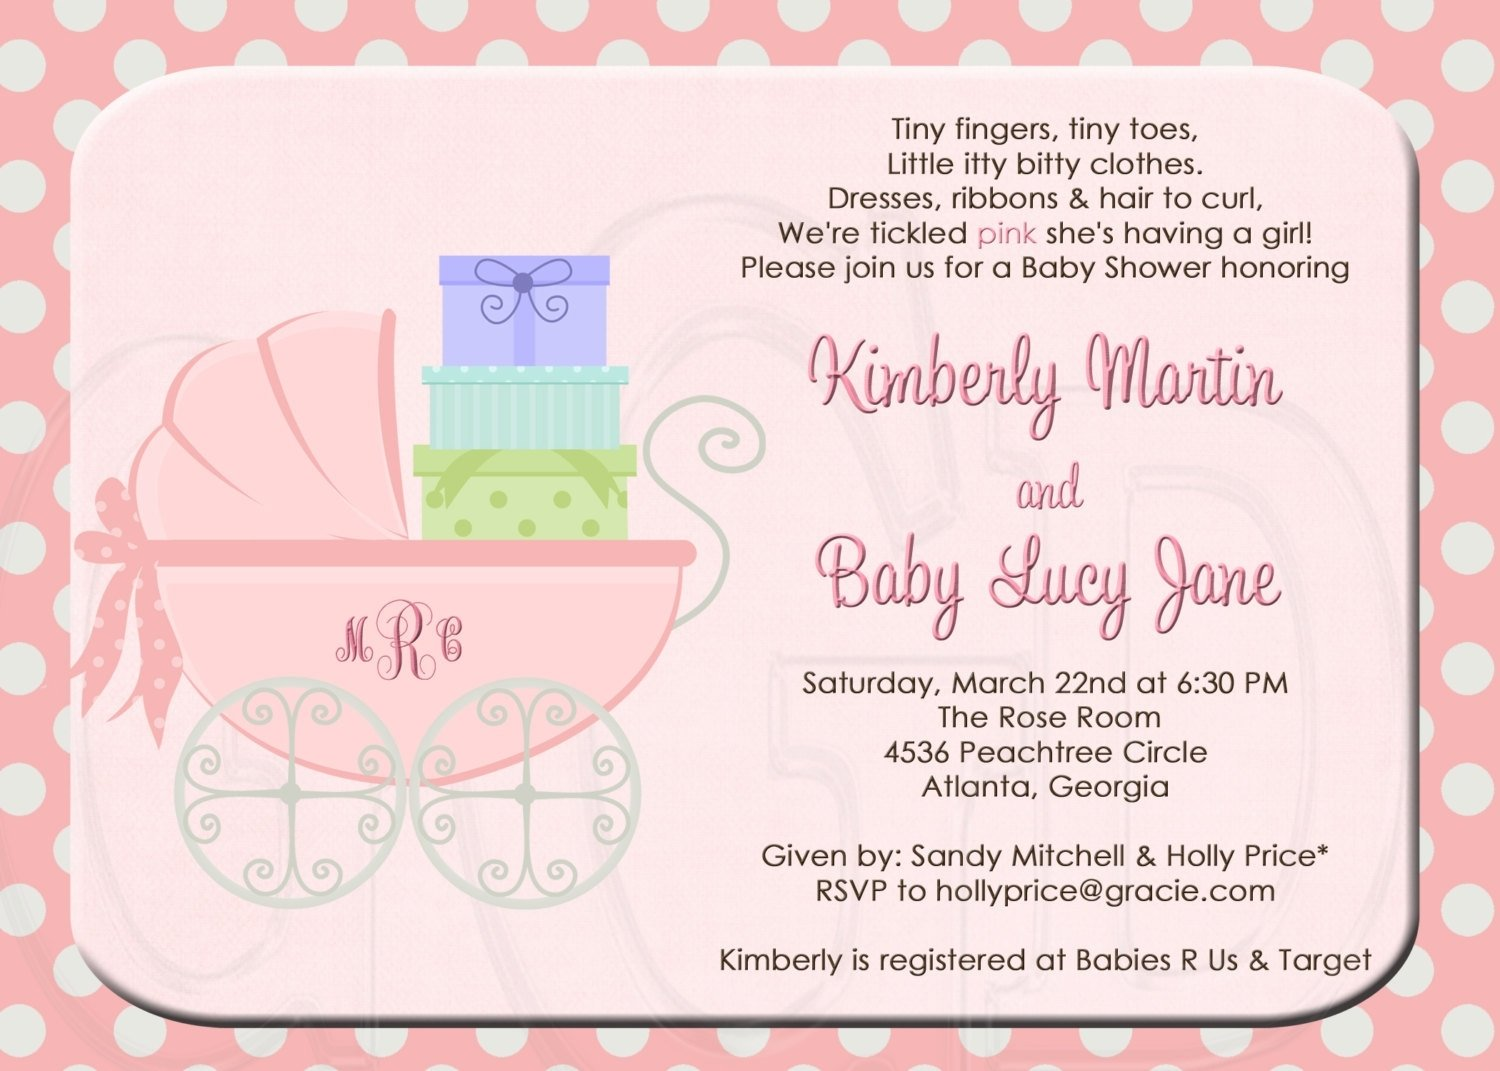 10 Fashionable Ideas For Baby Shower Invitations creative baby shower invitation wording ideas e280a2 baby showers ideas 1 2021